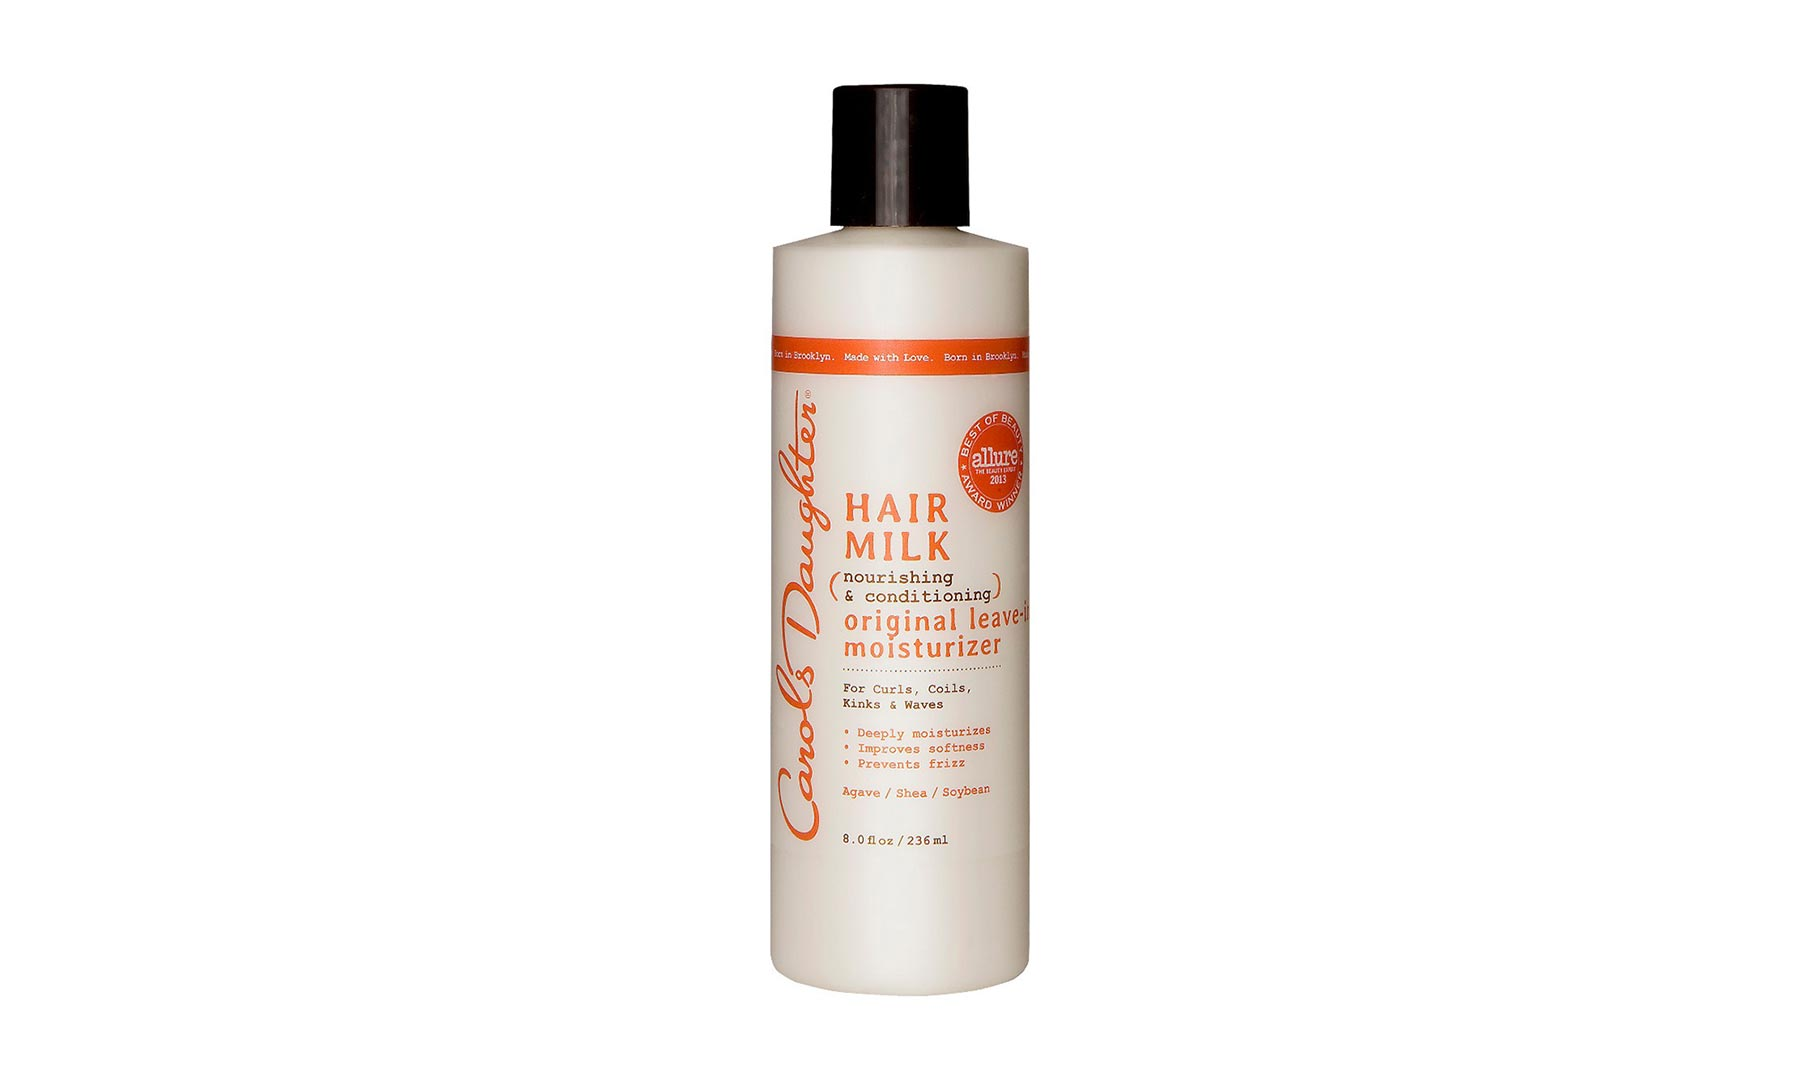 Carol's Daughter Hair Milk Moisturizer